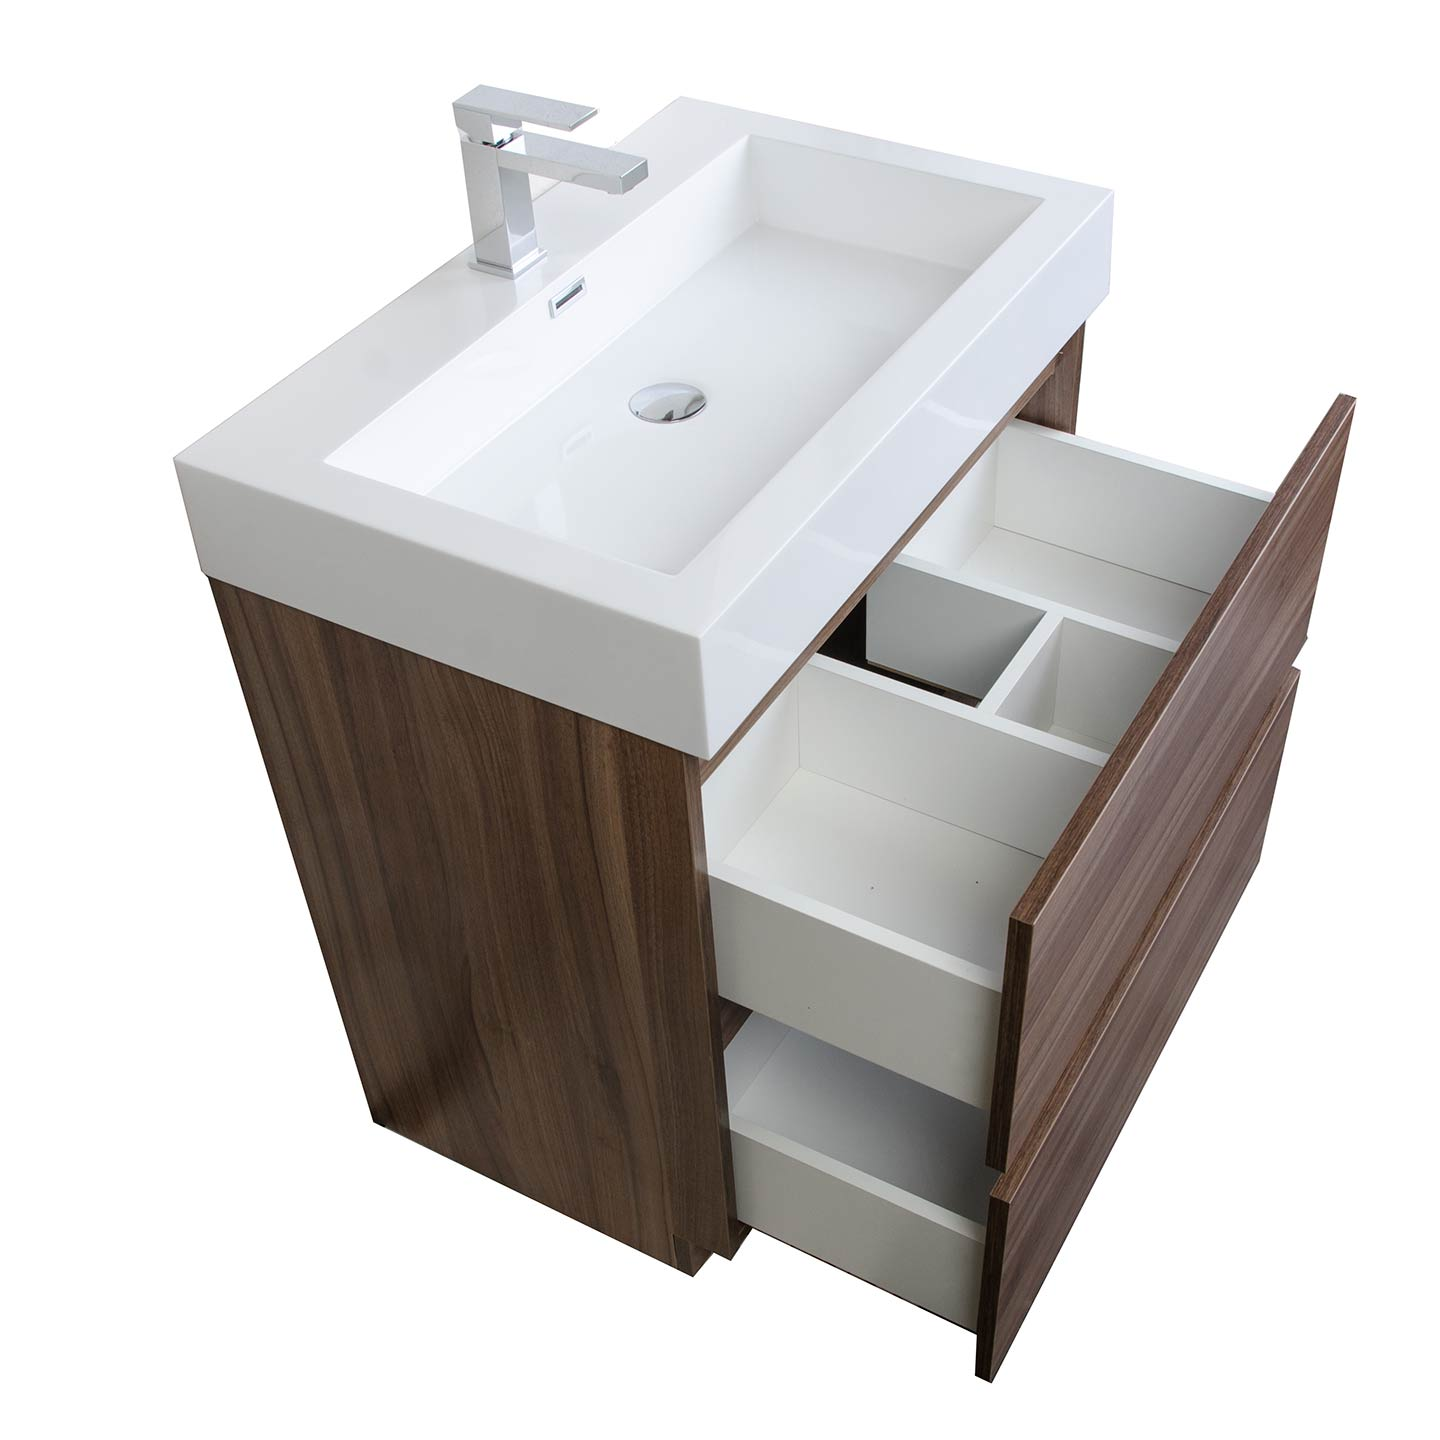 29 5 Contemporary Bathroom Vanity Set In Walnut Optional Mirrortn Ly750 Wn